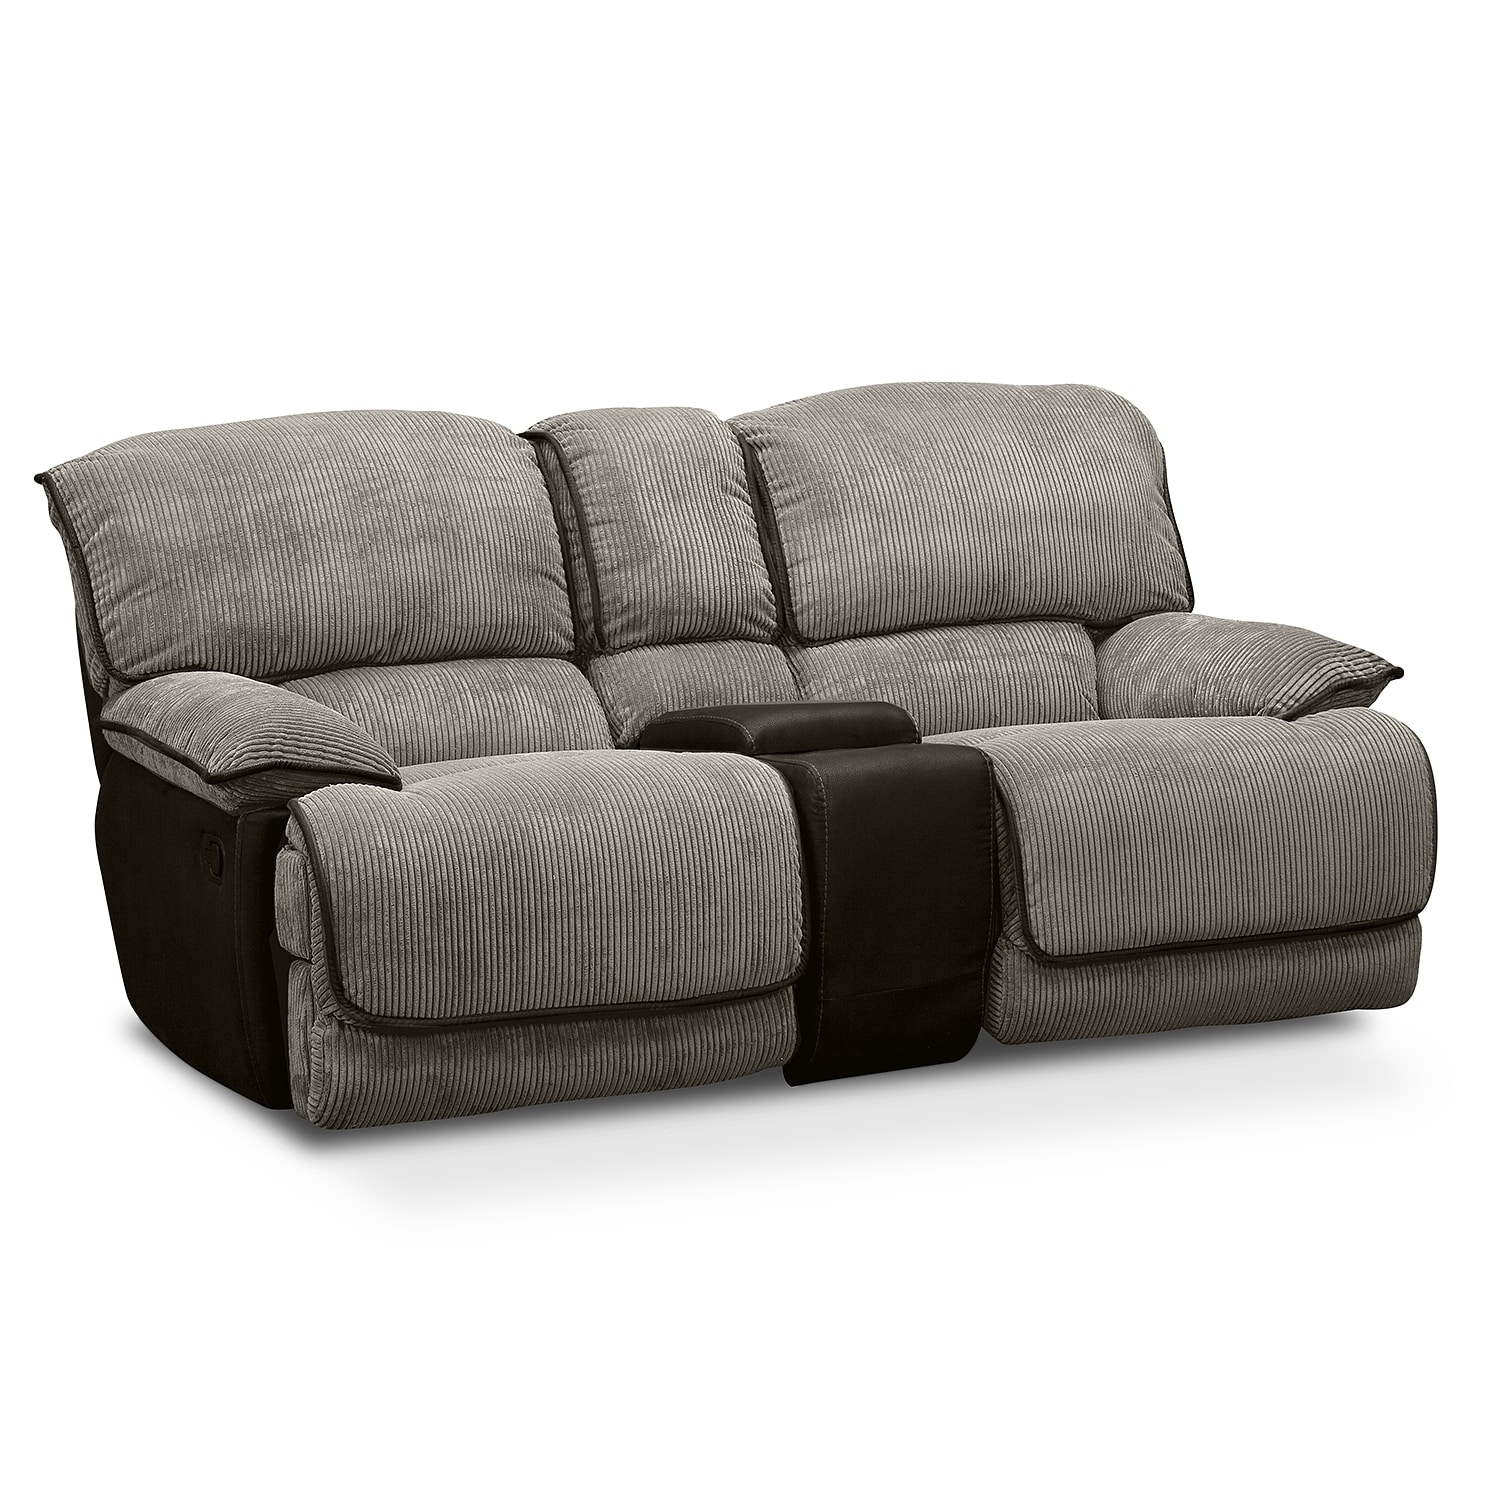 Beige Couch Cover With Center Center Console